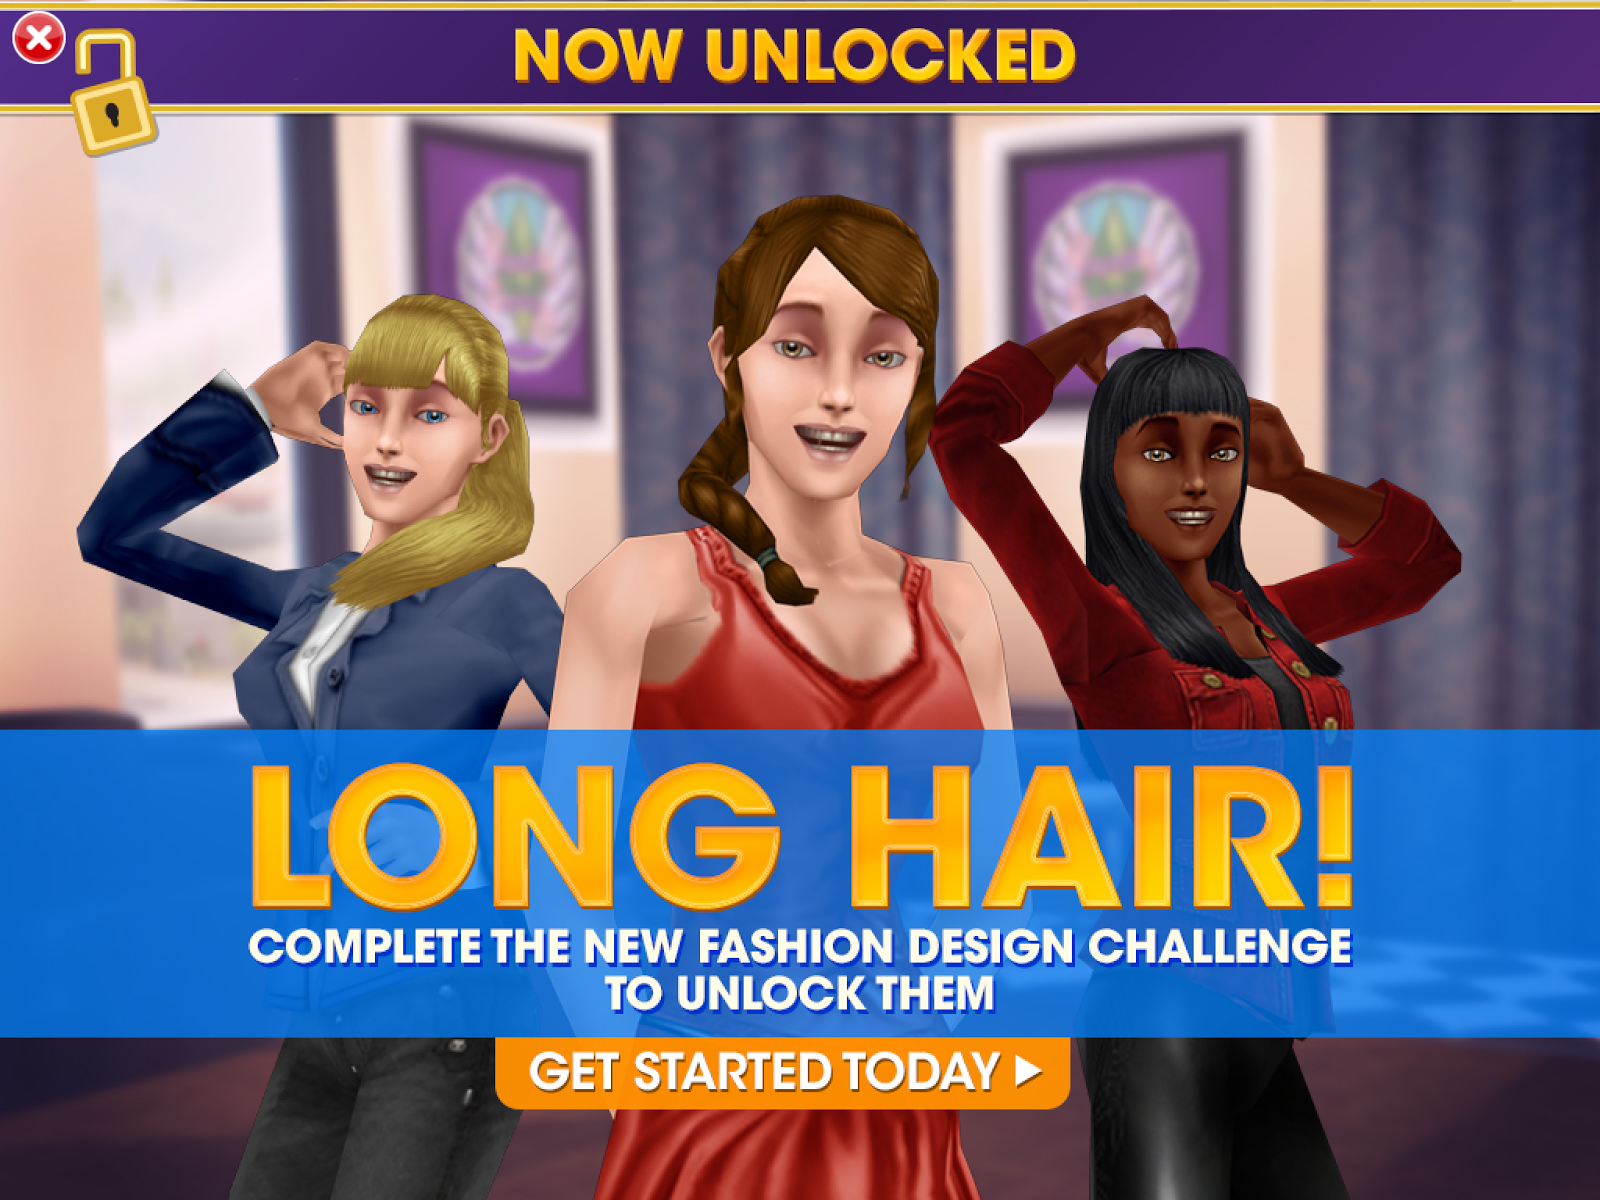 The sims freeplay long hairstyle - The Sims Freeplay Ringlets Of Fire Long Hair Quest Walkthrough Tips